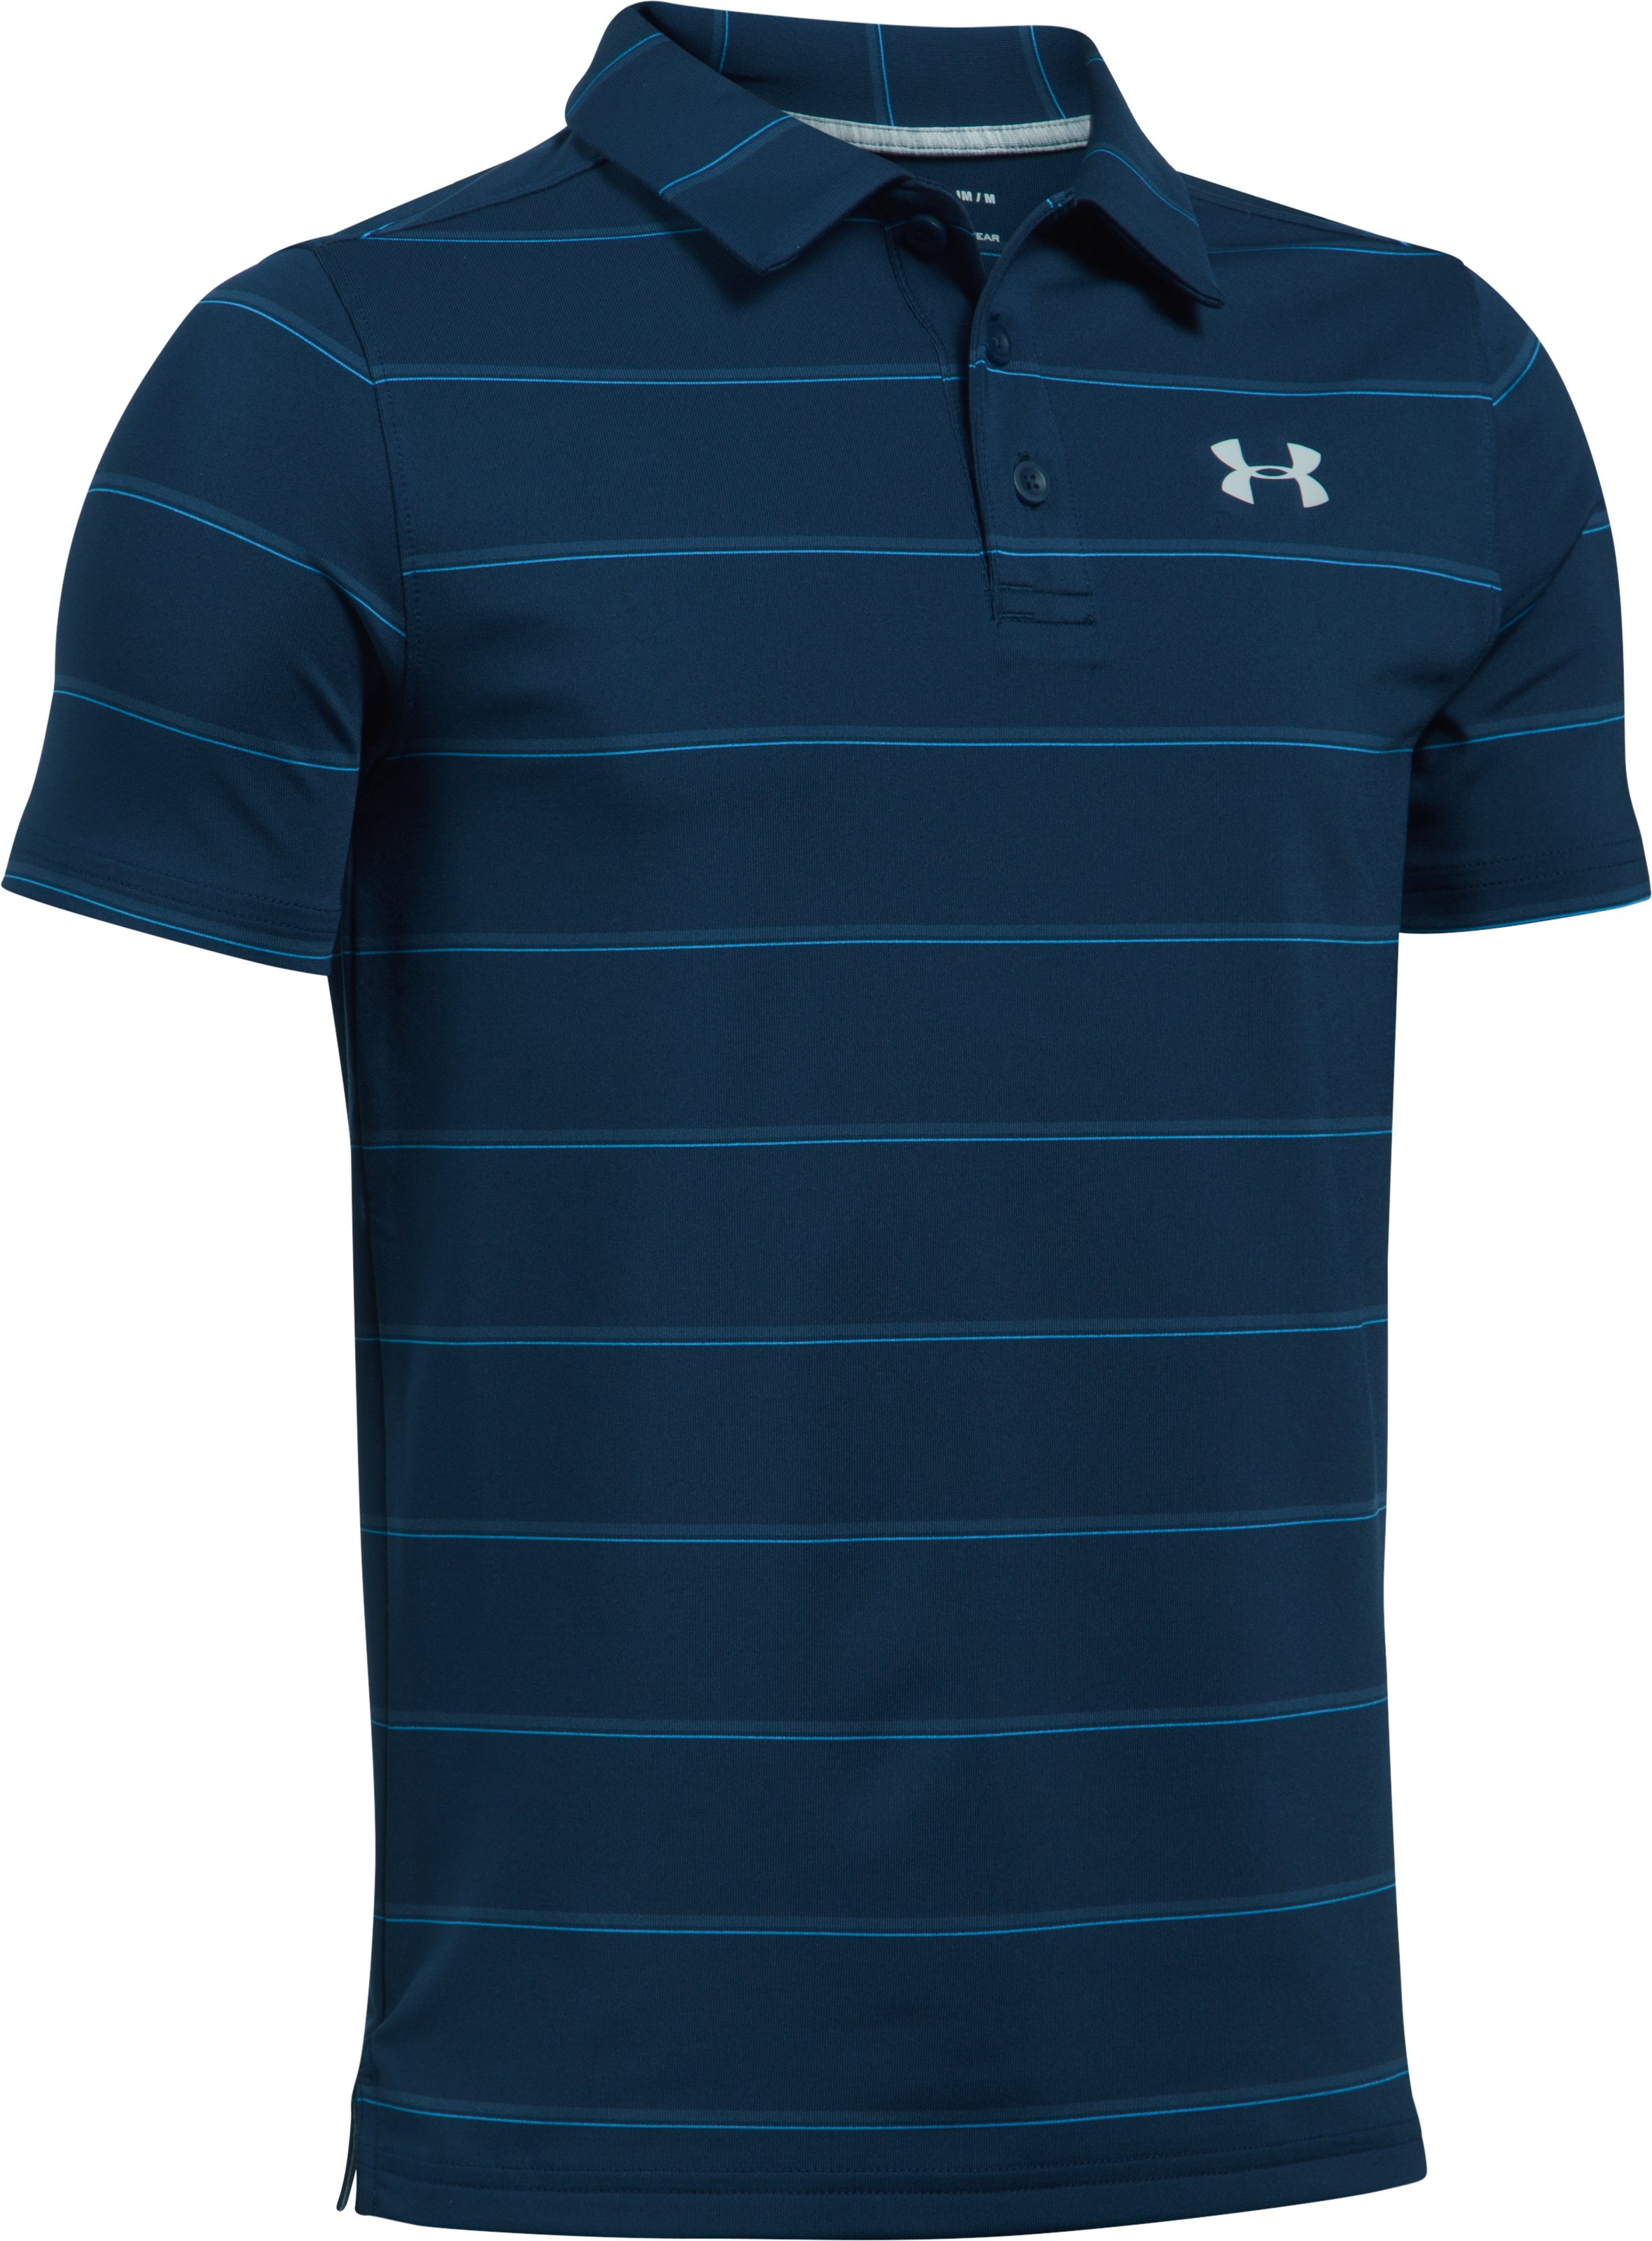 Boys' UA Playoff Stripe Polo, Academy